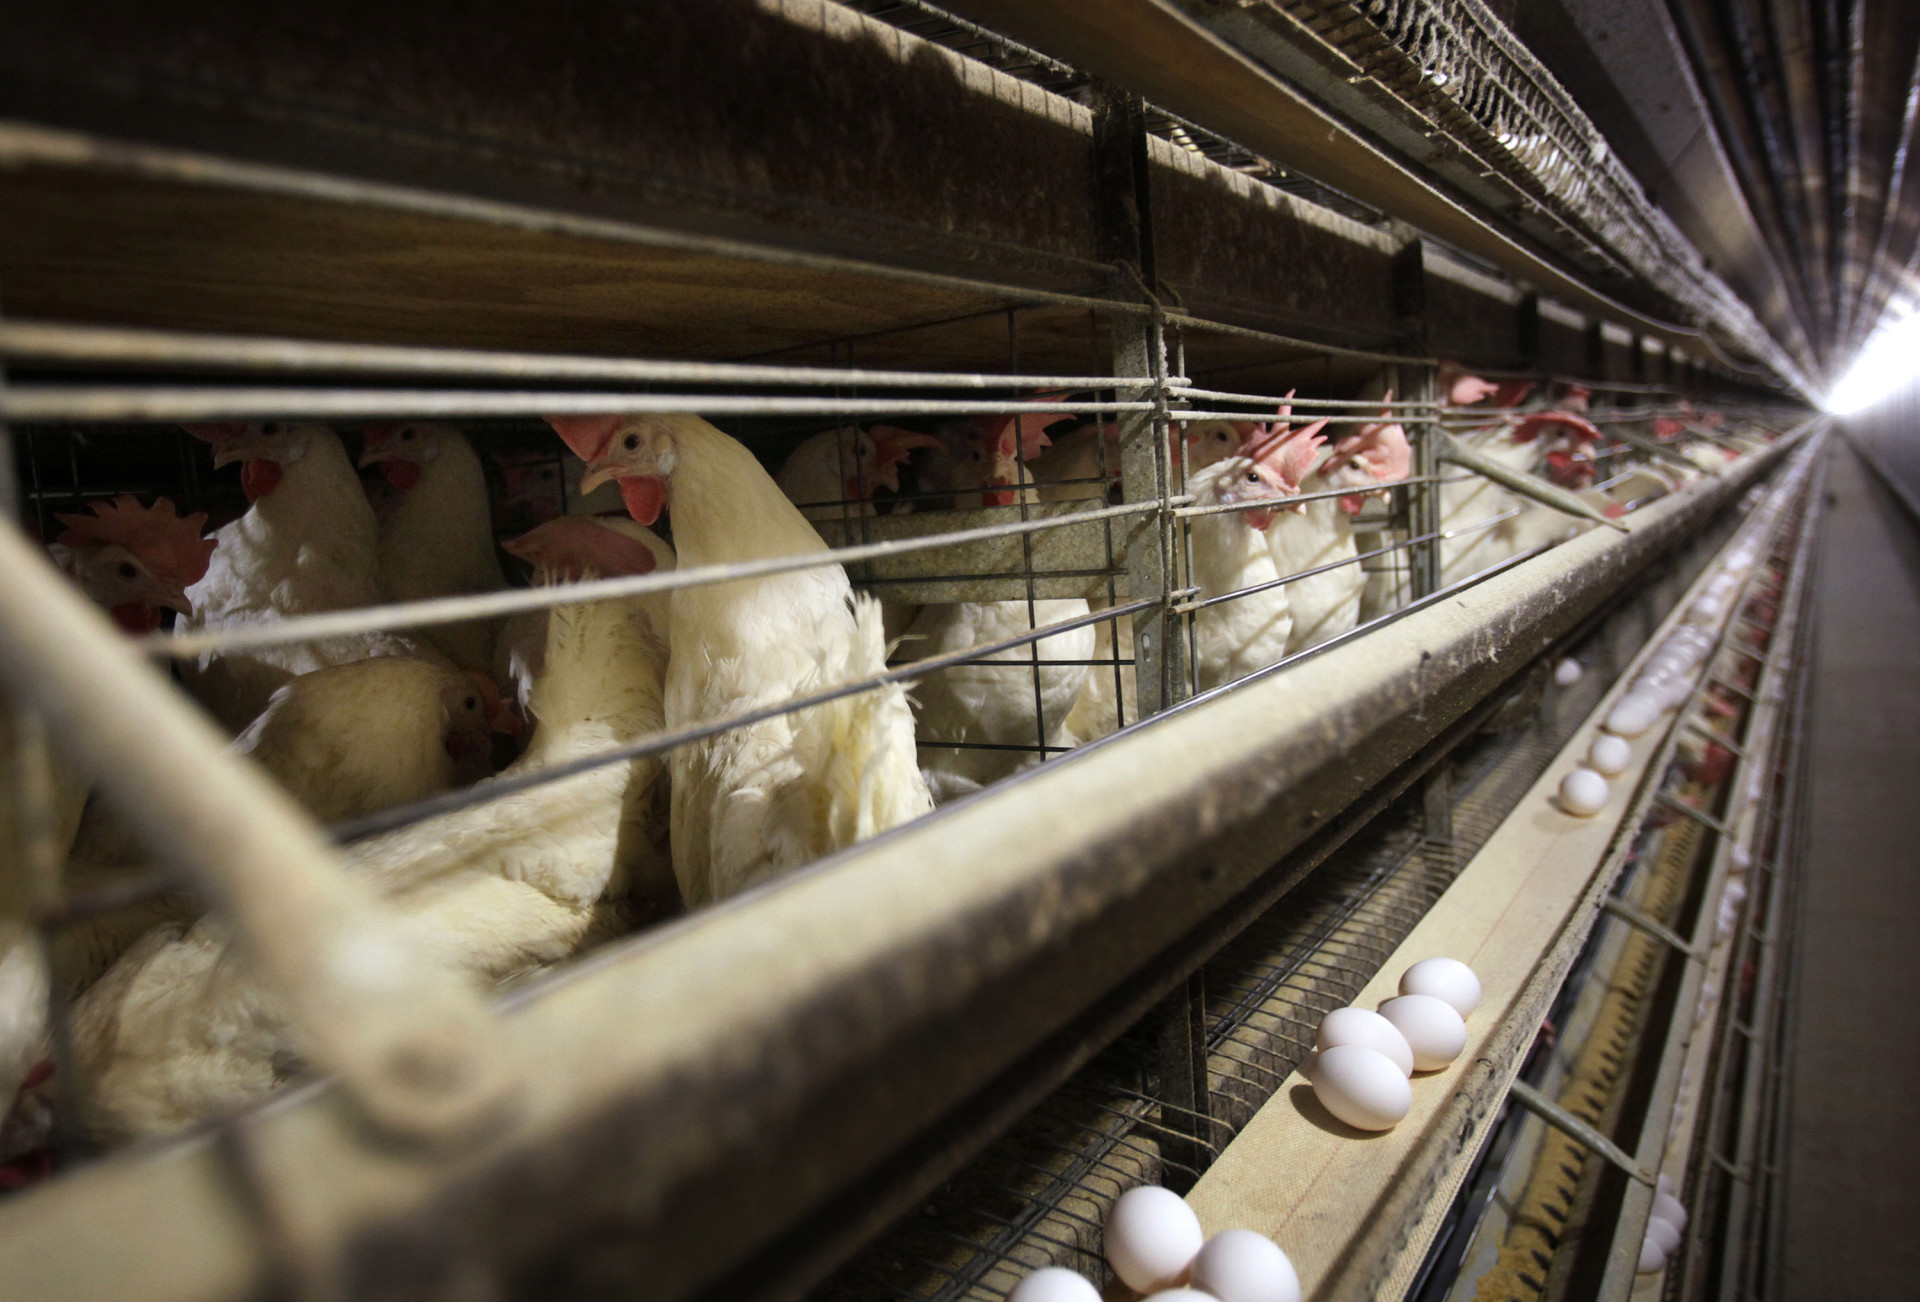 Chickens stand in their cages at a farm near Stuart, Iowa, in 2009. This week, bird flu hit a large poultry facility in Iowa. It's not clear how the virus is evading the industry's biosecurity efforts.